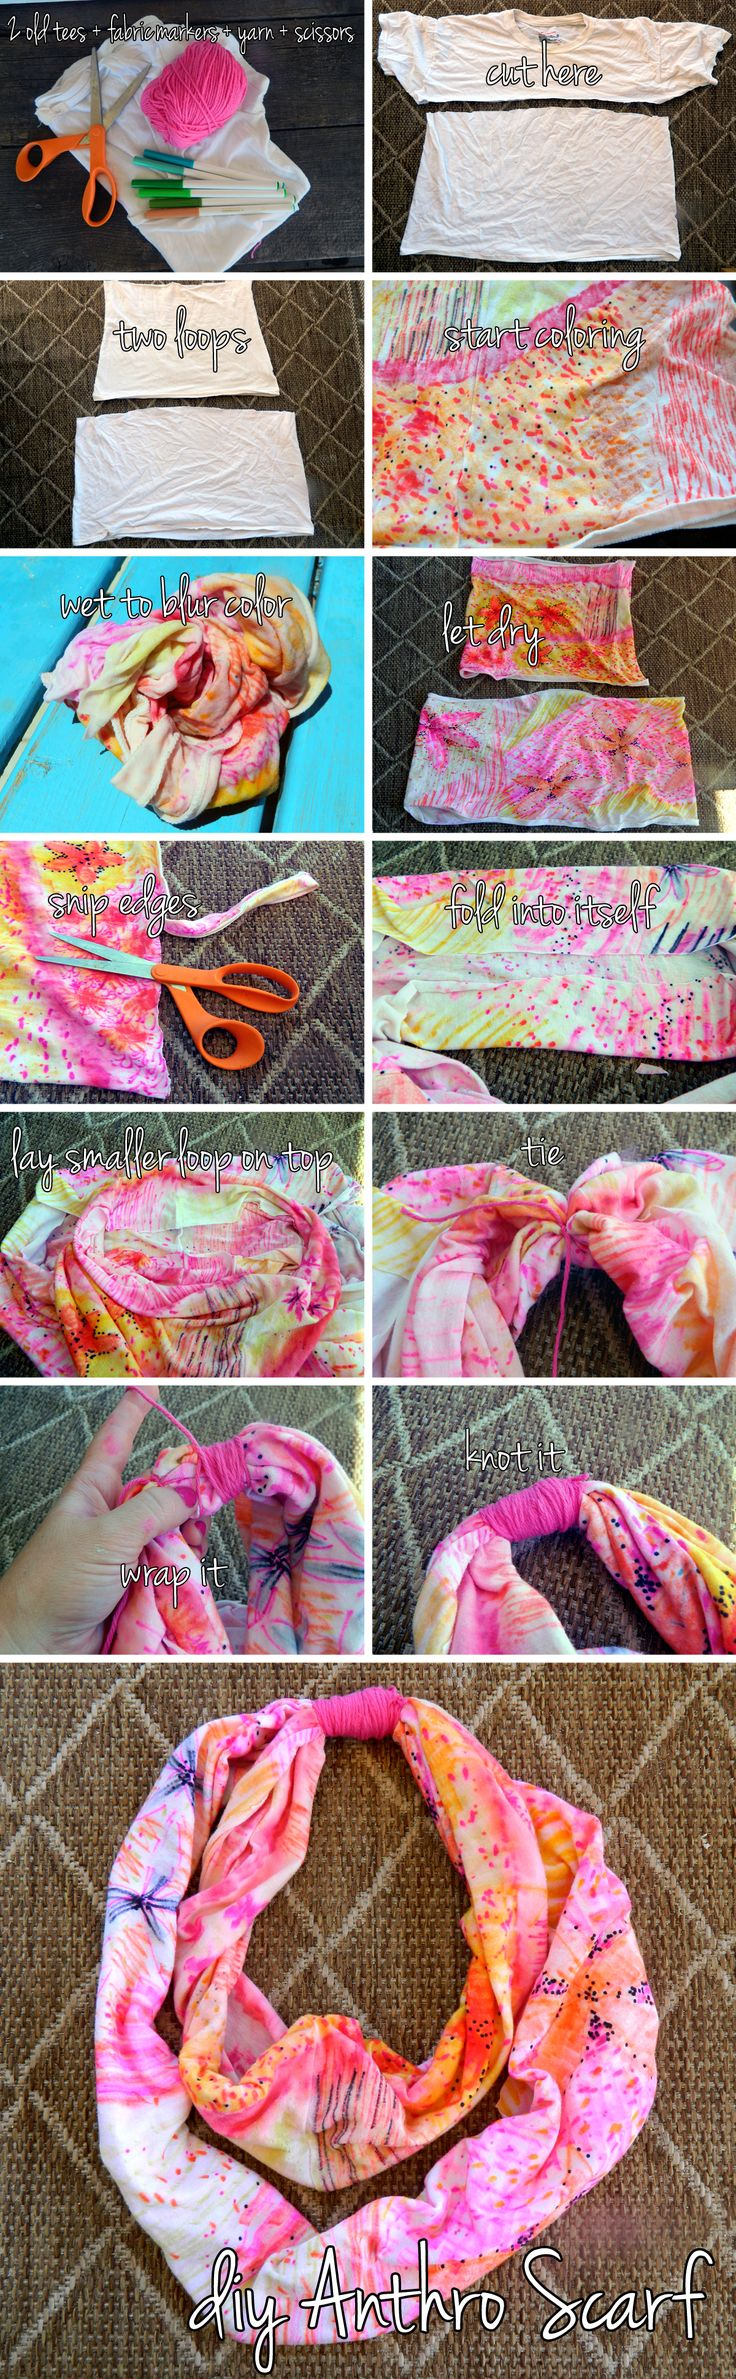 DIY Anthropologie Scarf. Awesome idea for those old shirts, but I'll do my colors different... Or use the colored shirts